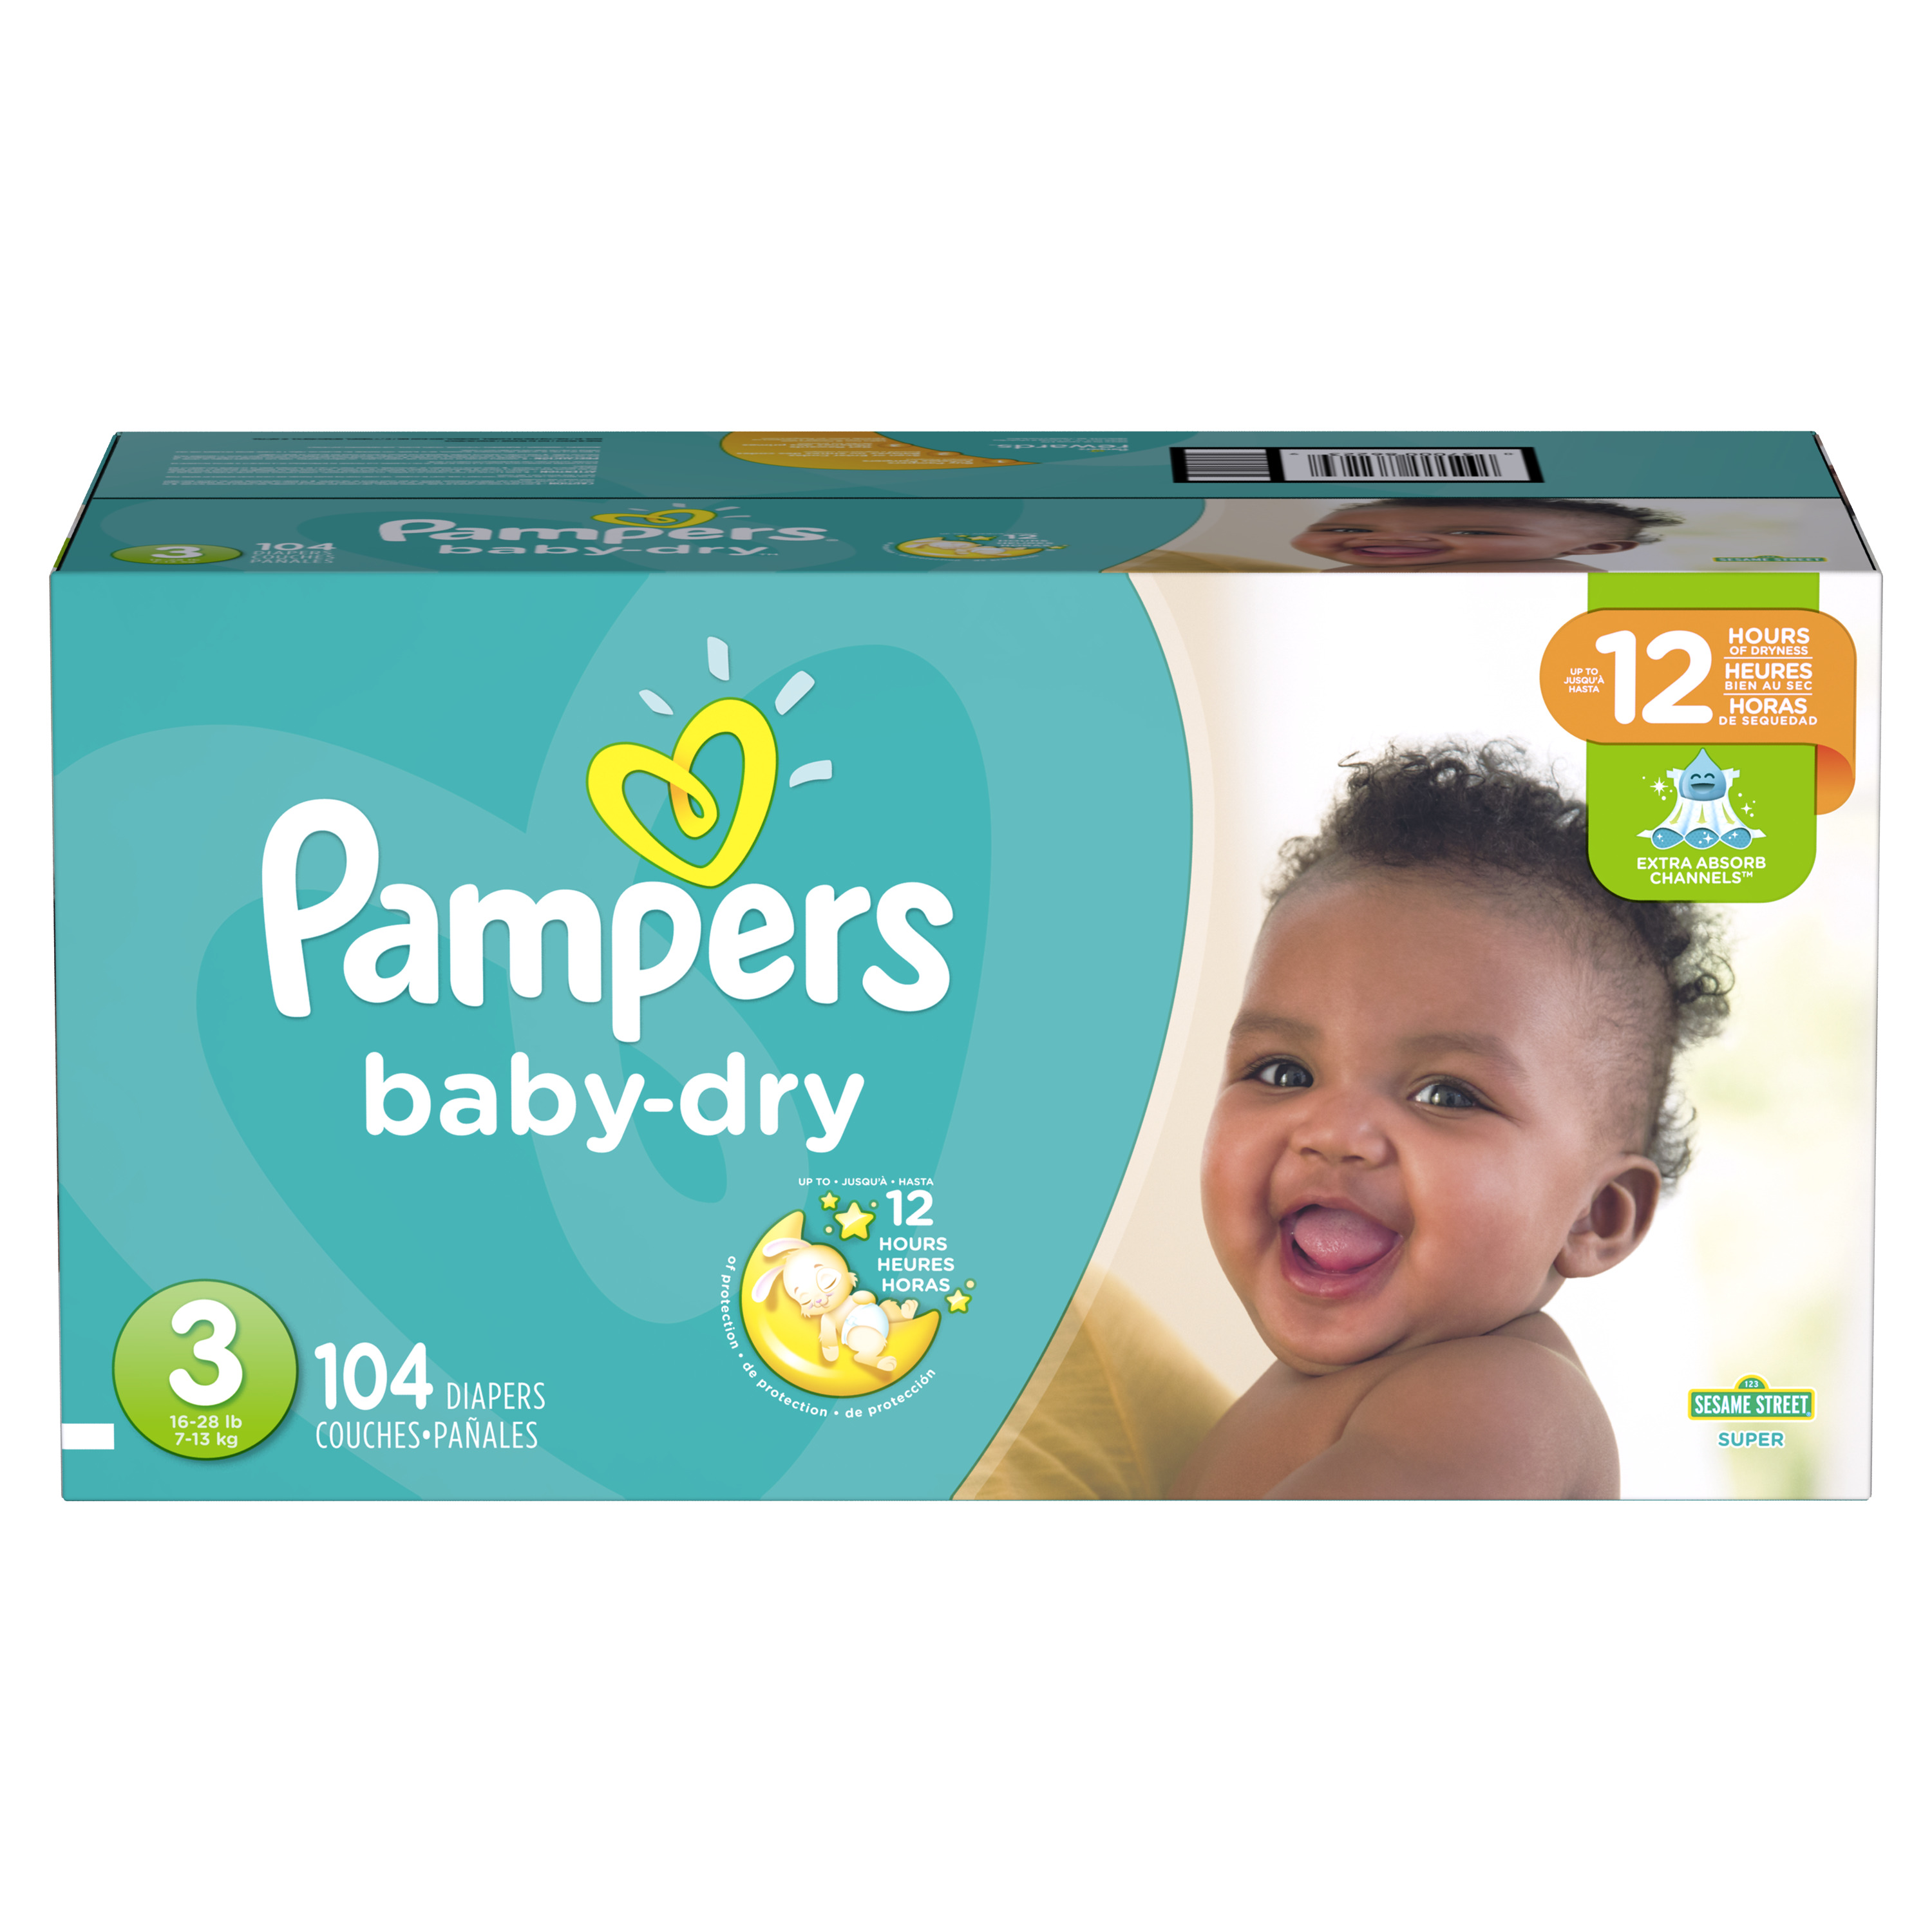 Pampers Baby-Dry Diapers Size 3, 104 Count